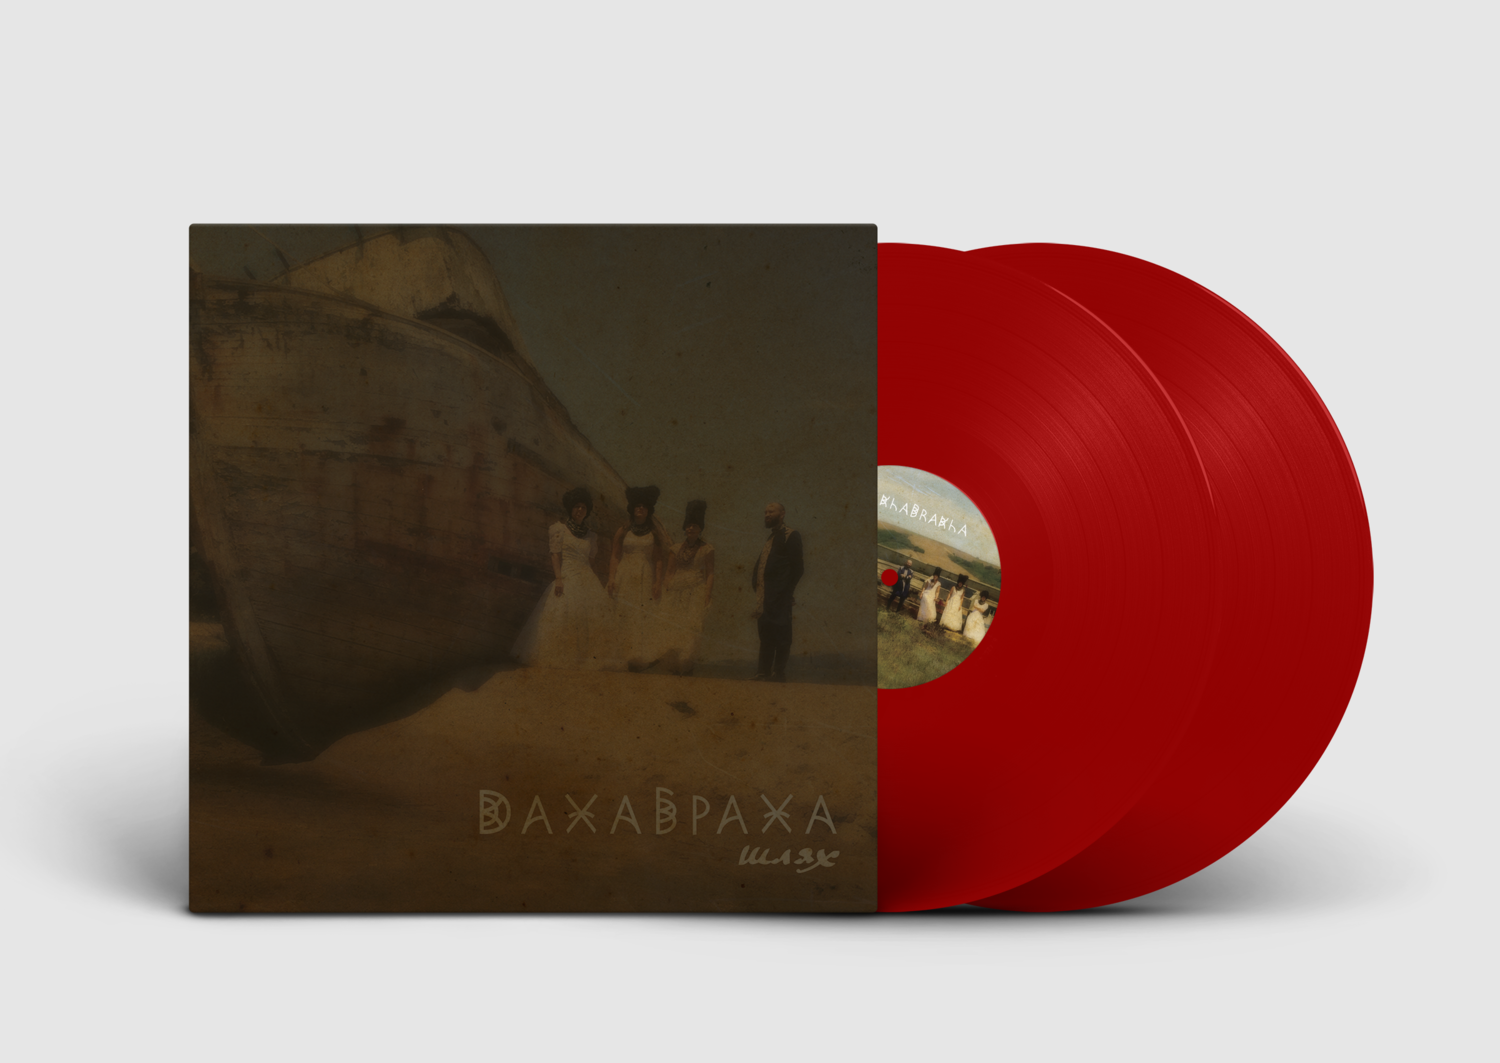 ДахаБраха - Шлях / DakhaBrakha - The Way (red vinyl)